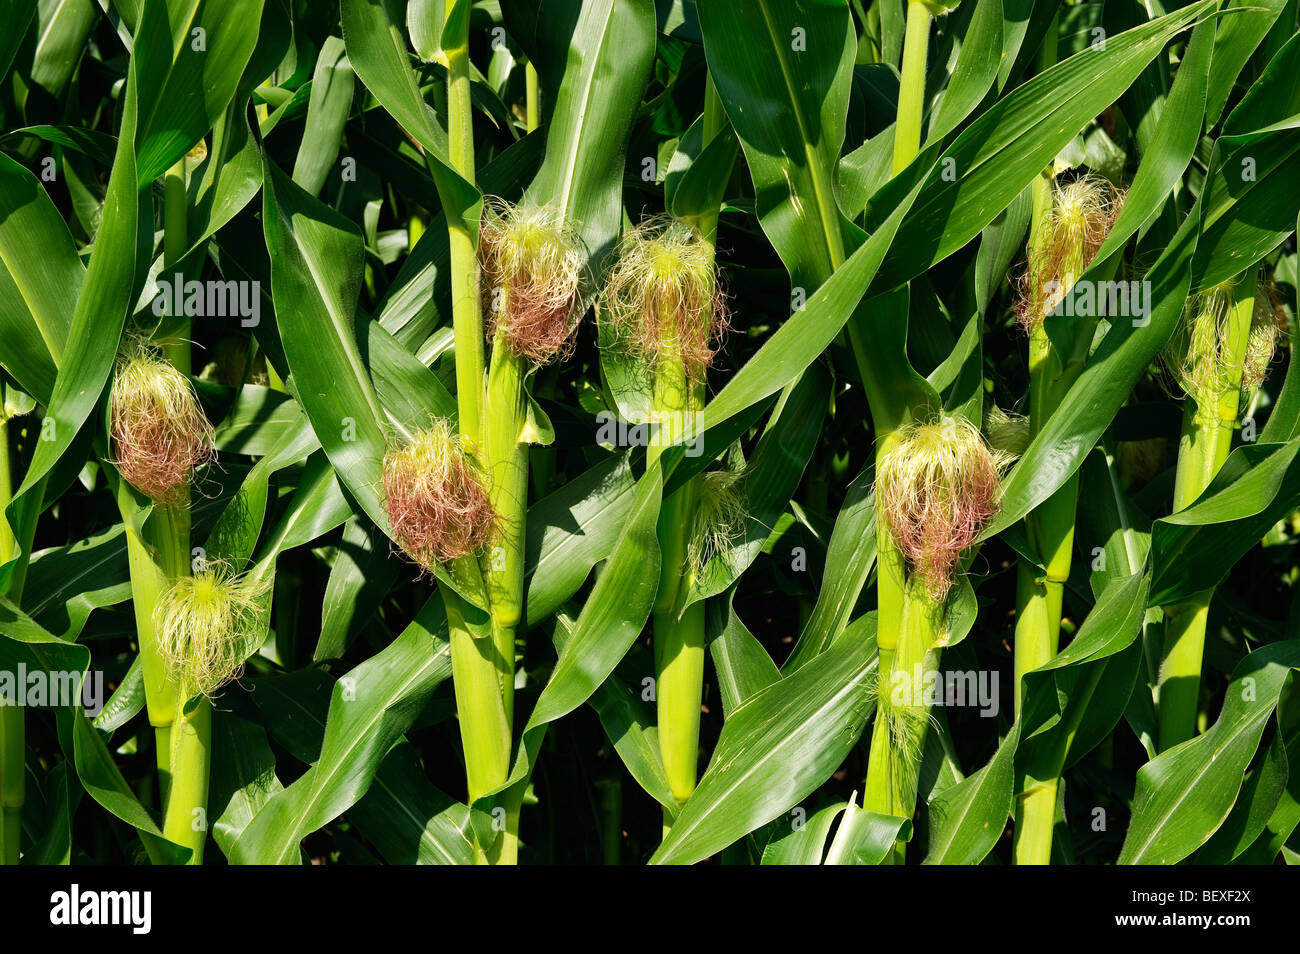 Agriculture - Closeup of immature grain corn ears on the stalks in mid Summer / Iowa, USA. - Stock Image